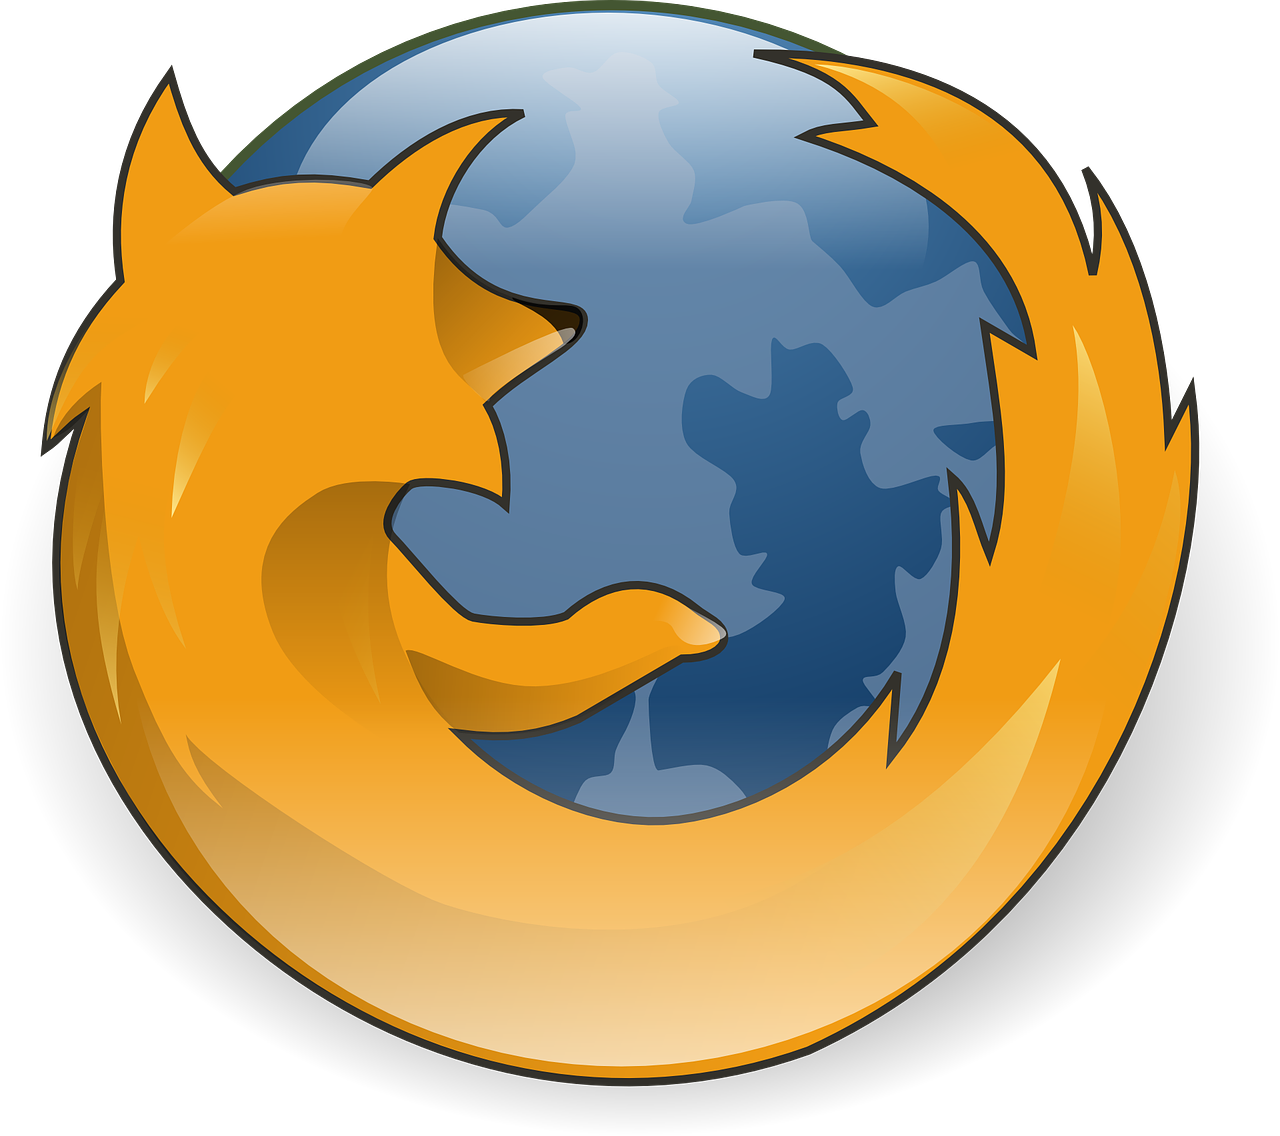 firefox browser logo free photo